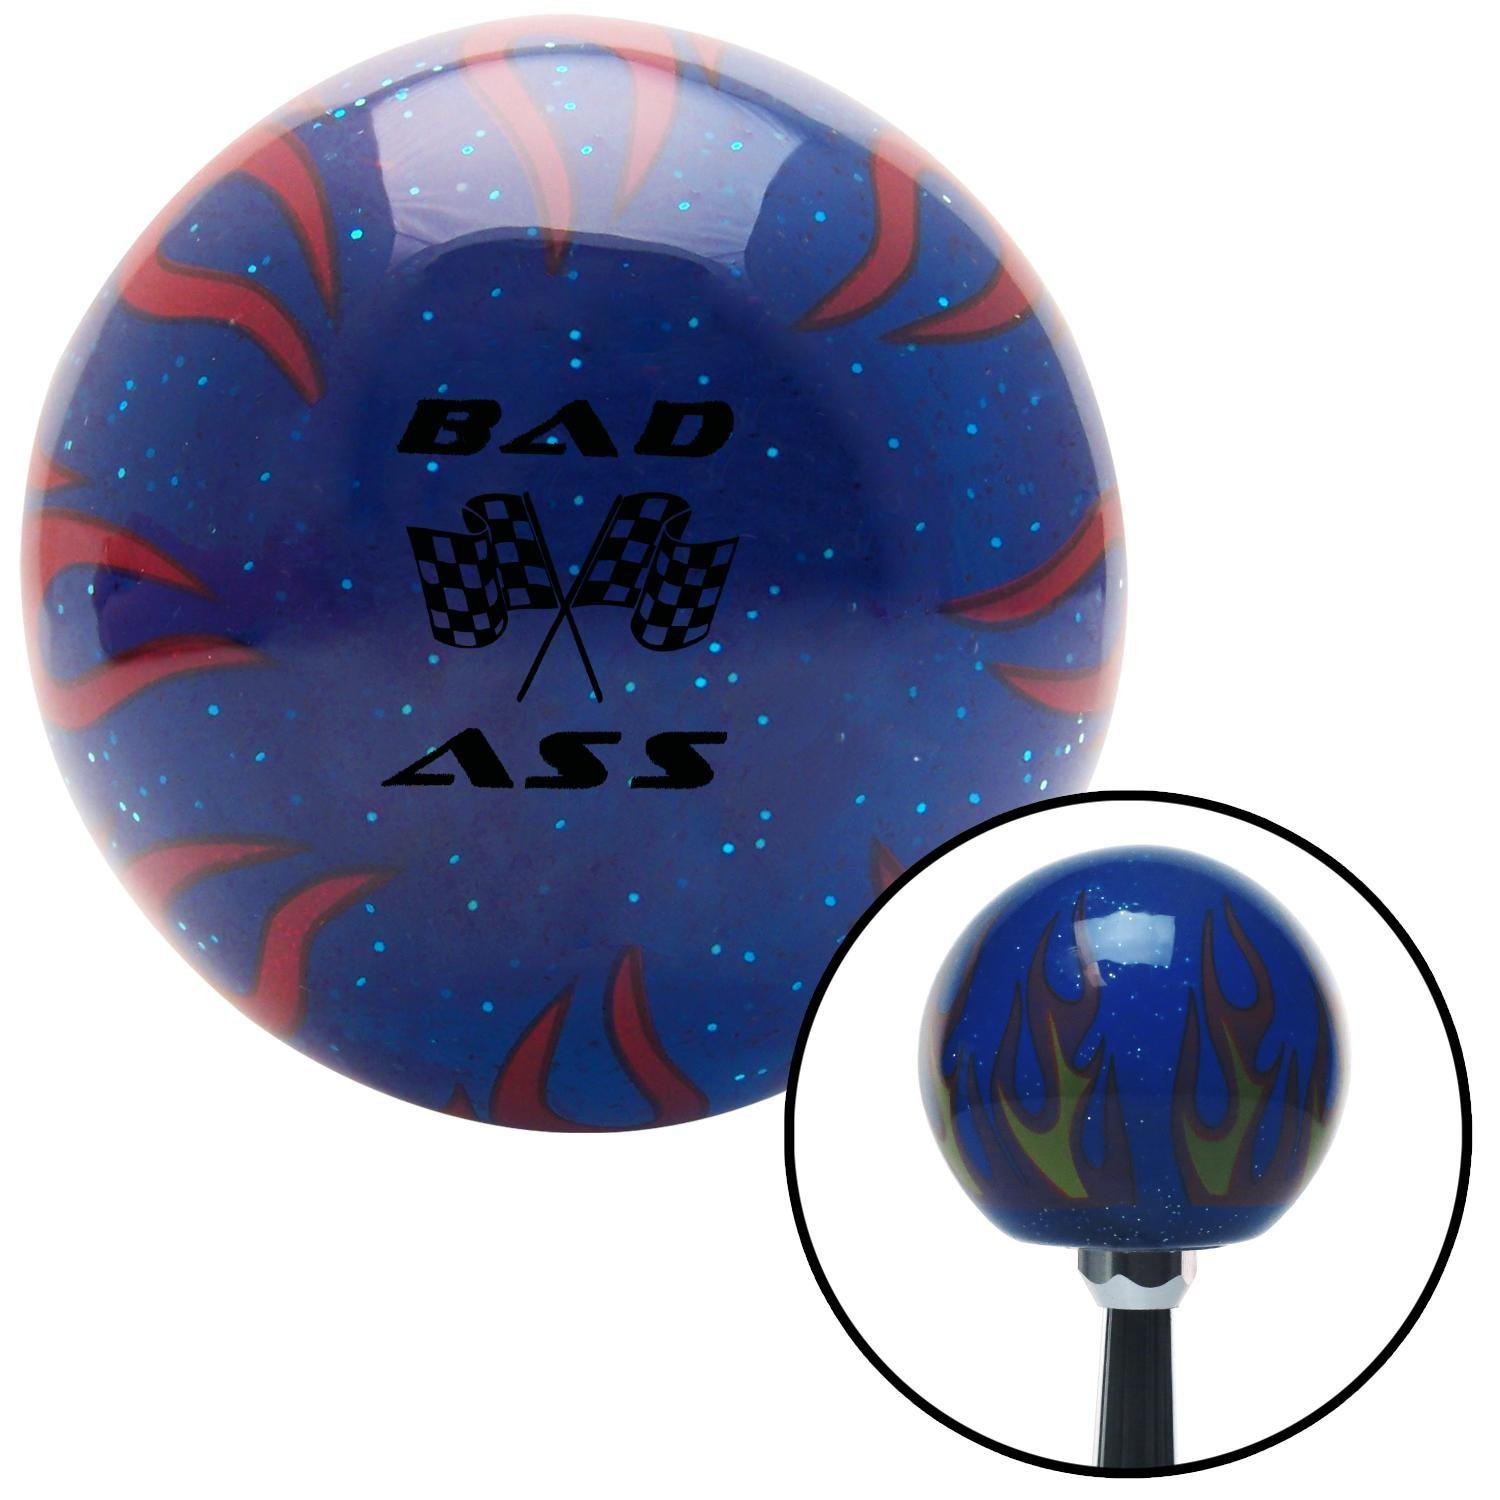 American Shifter 250542 Blue Flame Metal Flake Shift Knob with M16 x 1.5 Insert Black Bad Ass Flags